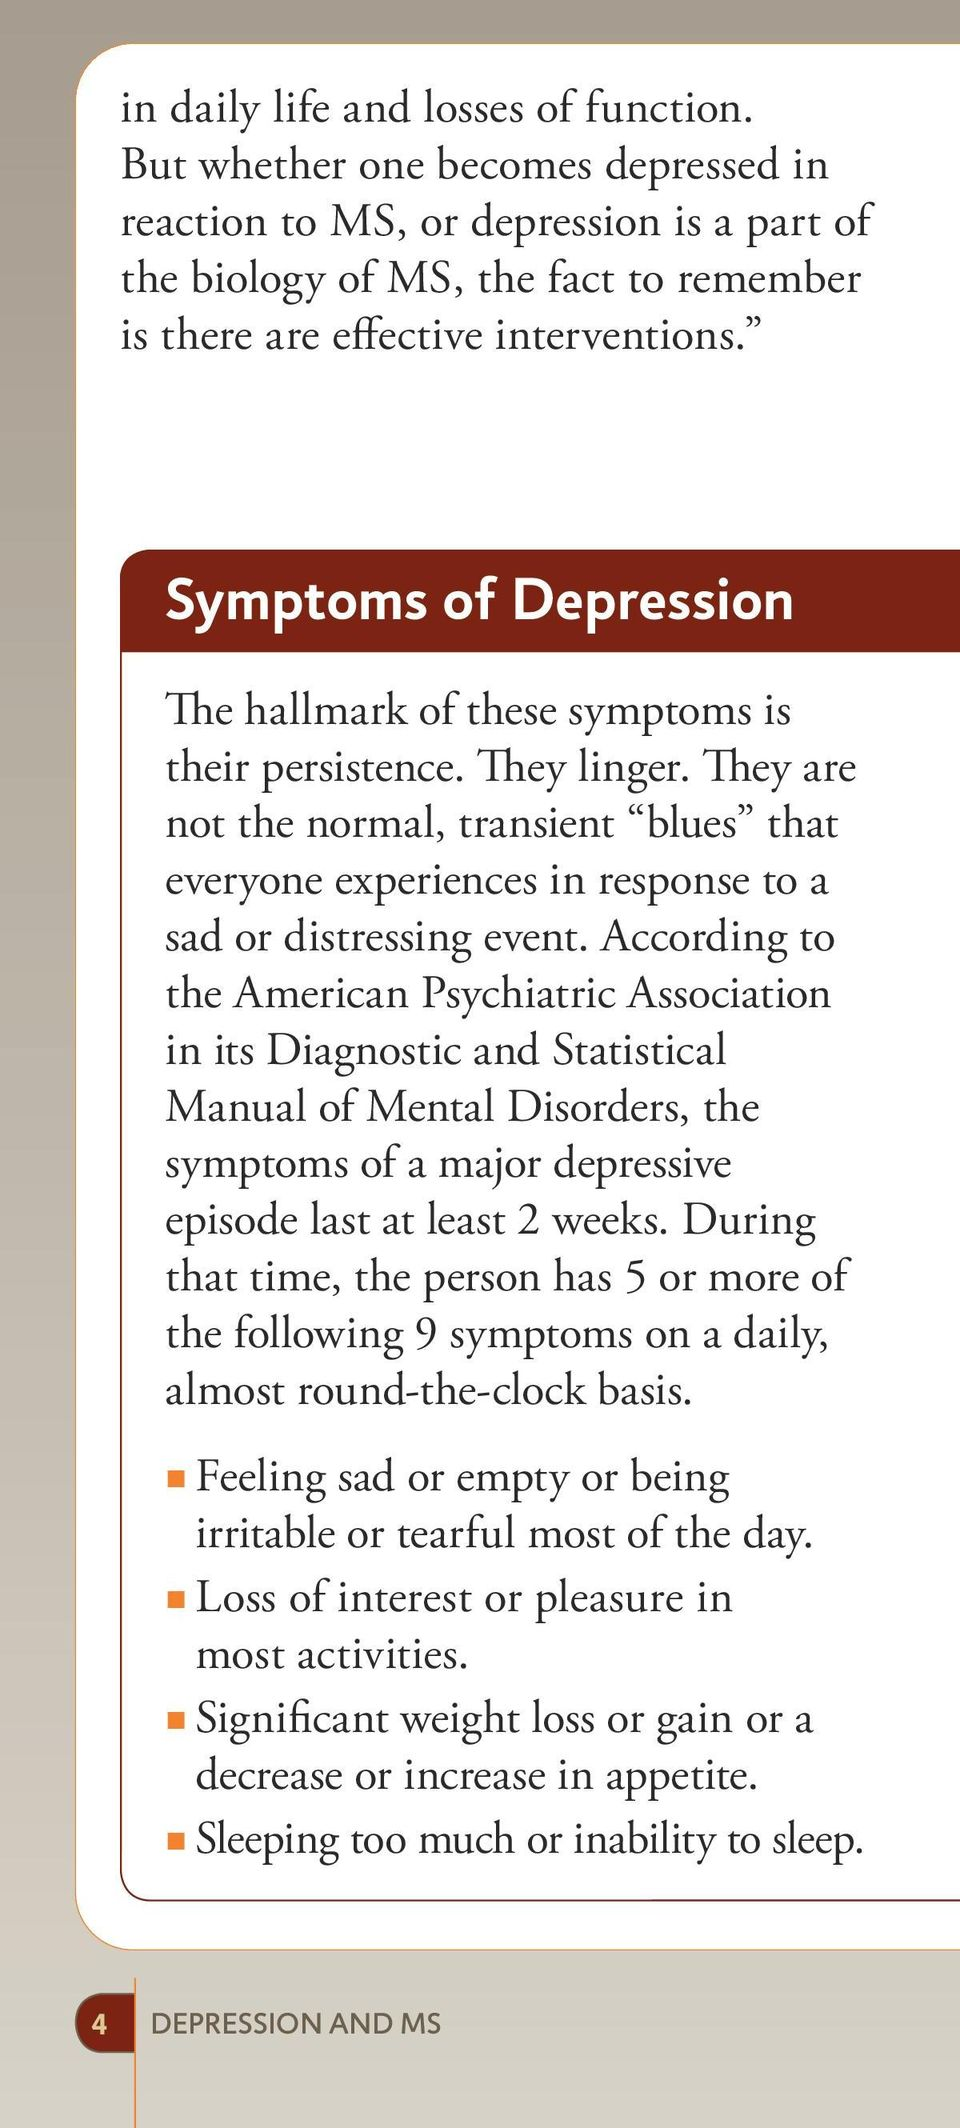 According to the American Psychiatric Association in its Diagnostic and Statistical Manual of Mental Disorders, the symptoms of a major depressive episode last at least 2 weeks.